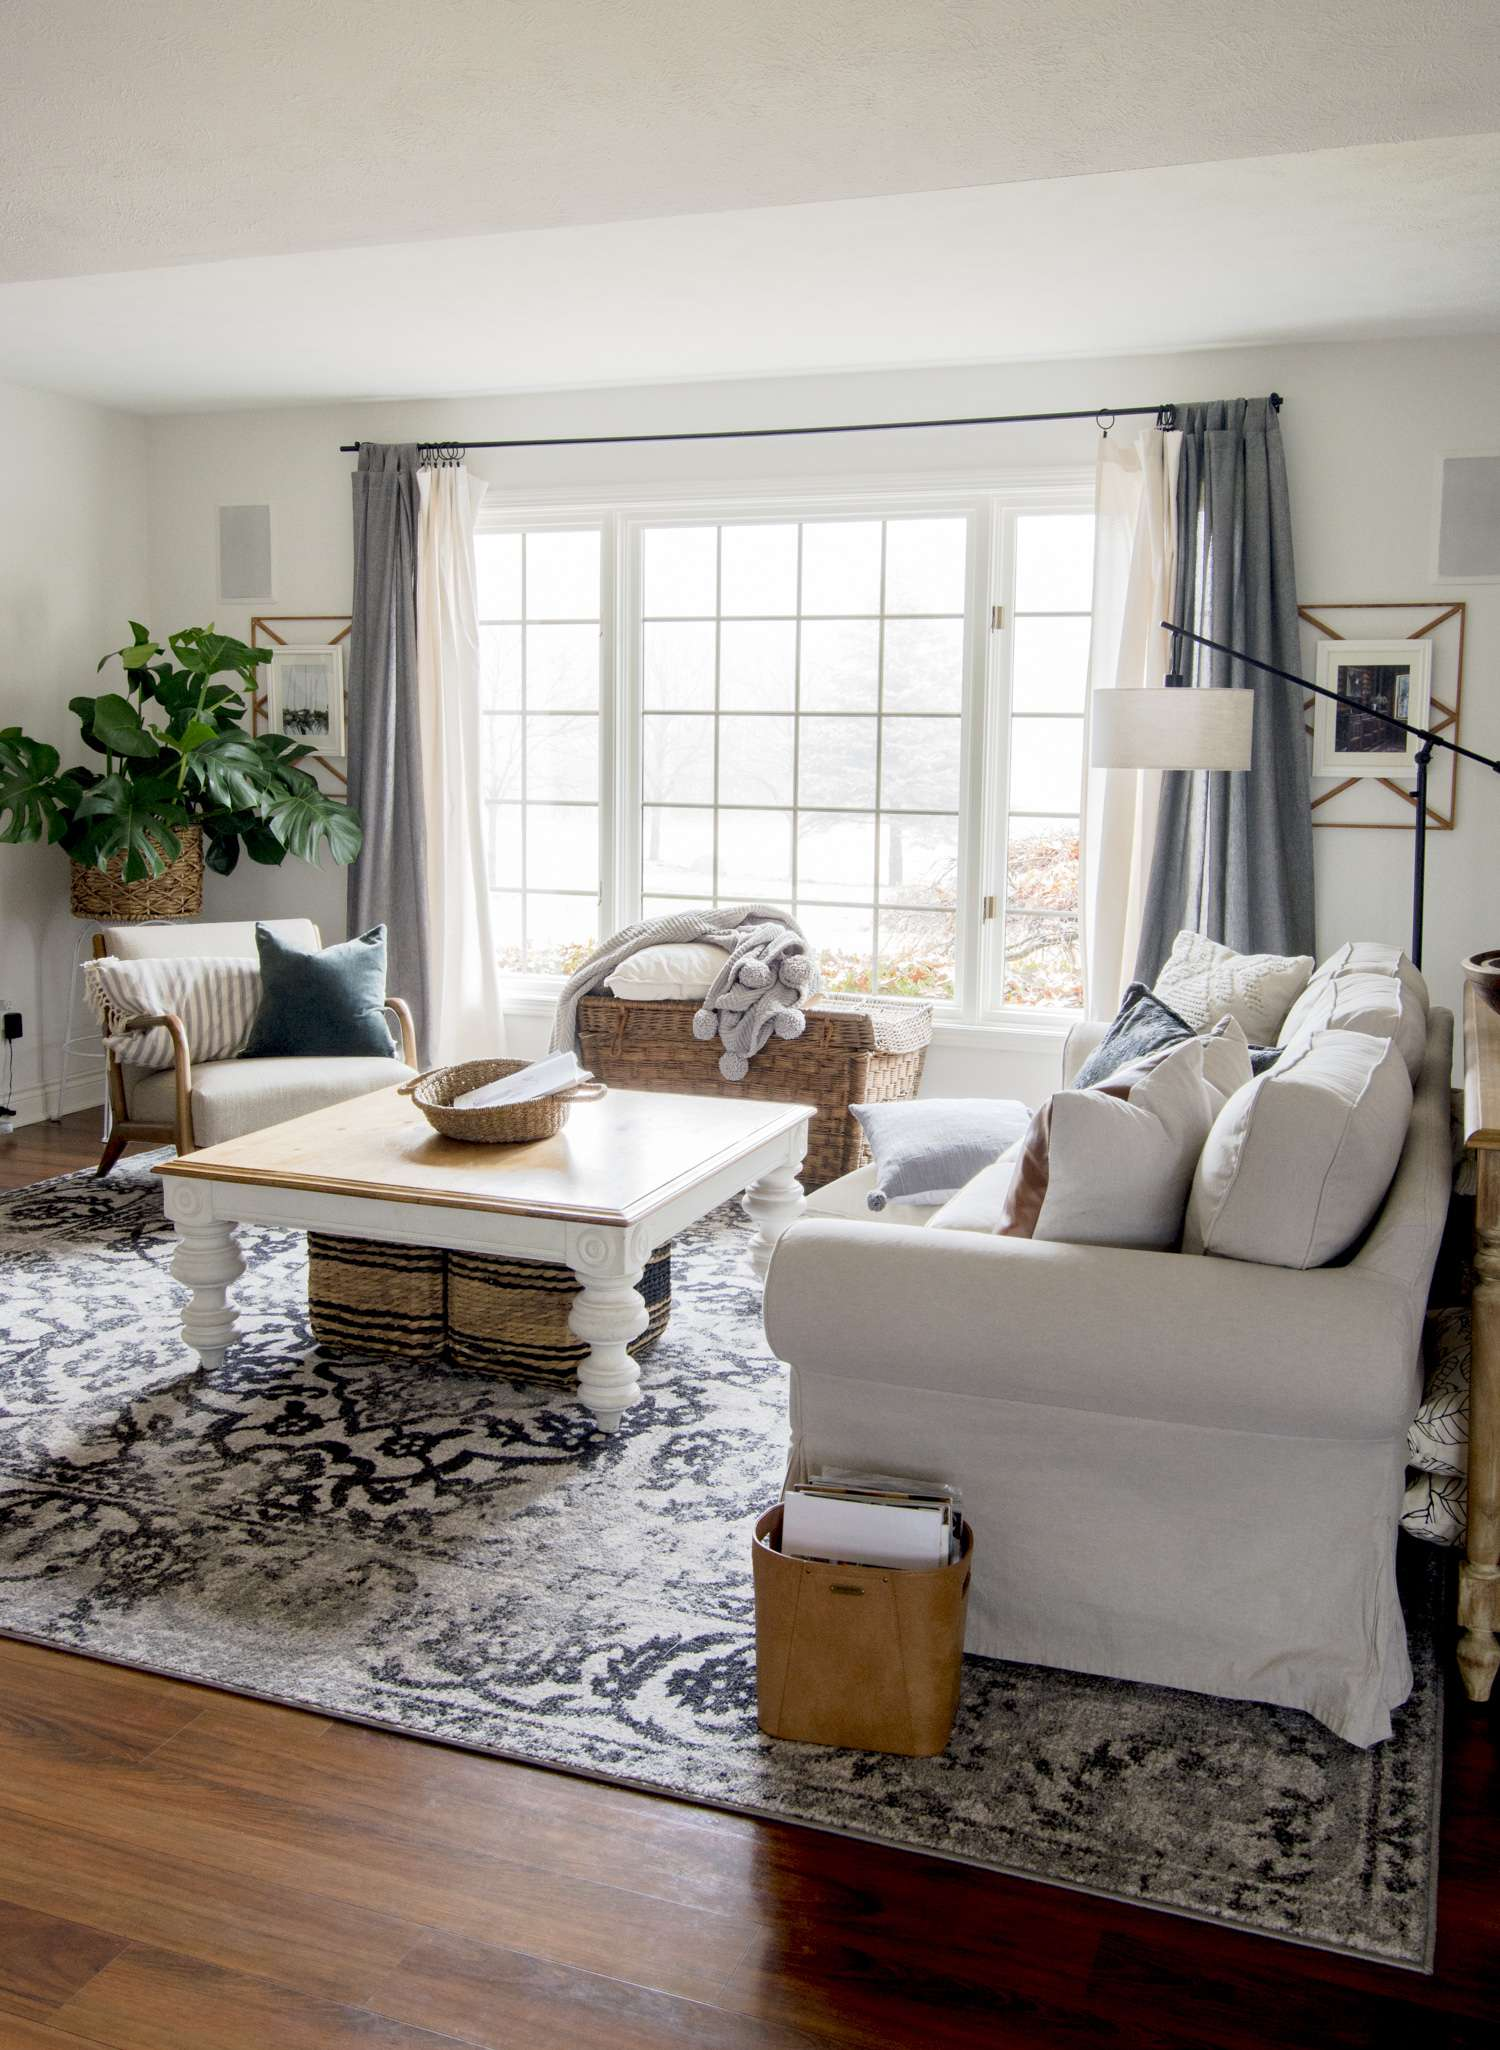 Cozy rug for a hygge home.